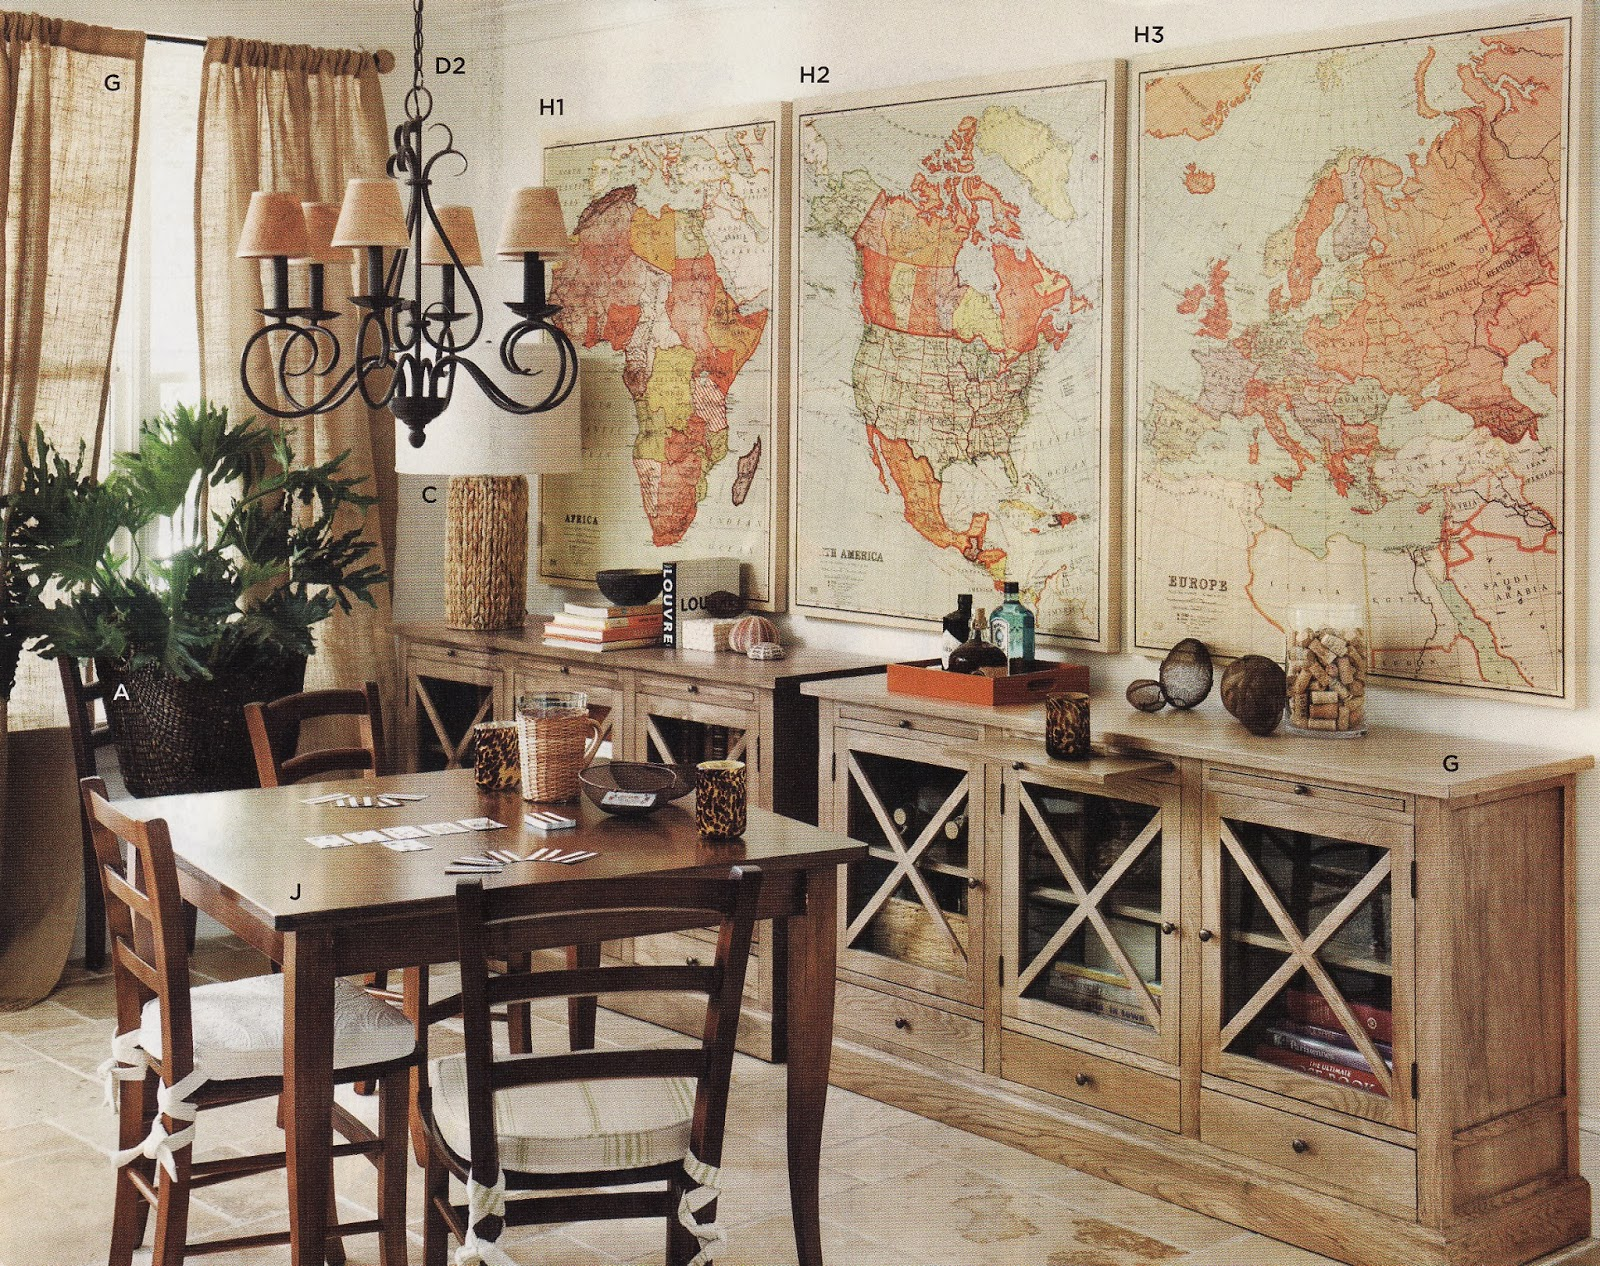 Creative juices decor oh for the love of maps home for Antique decoration